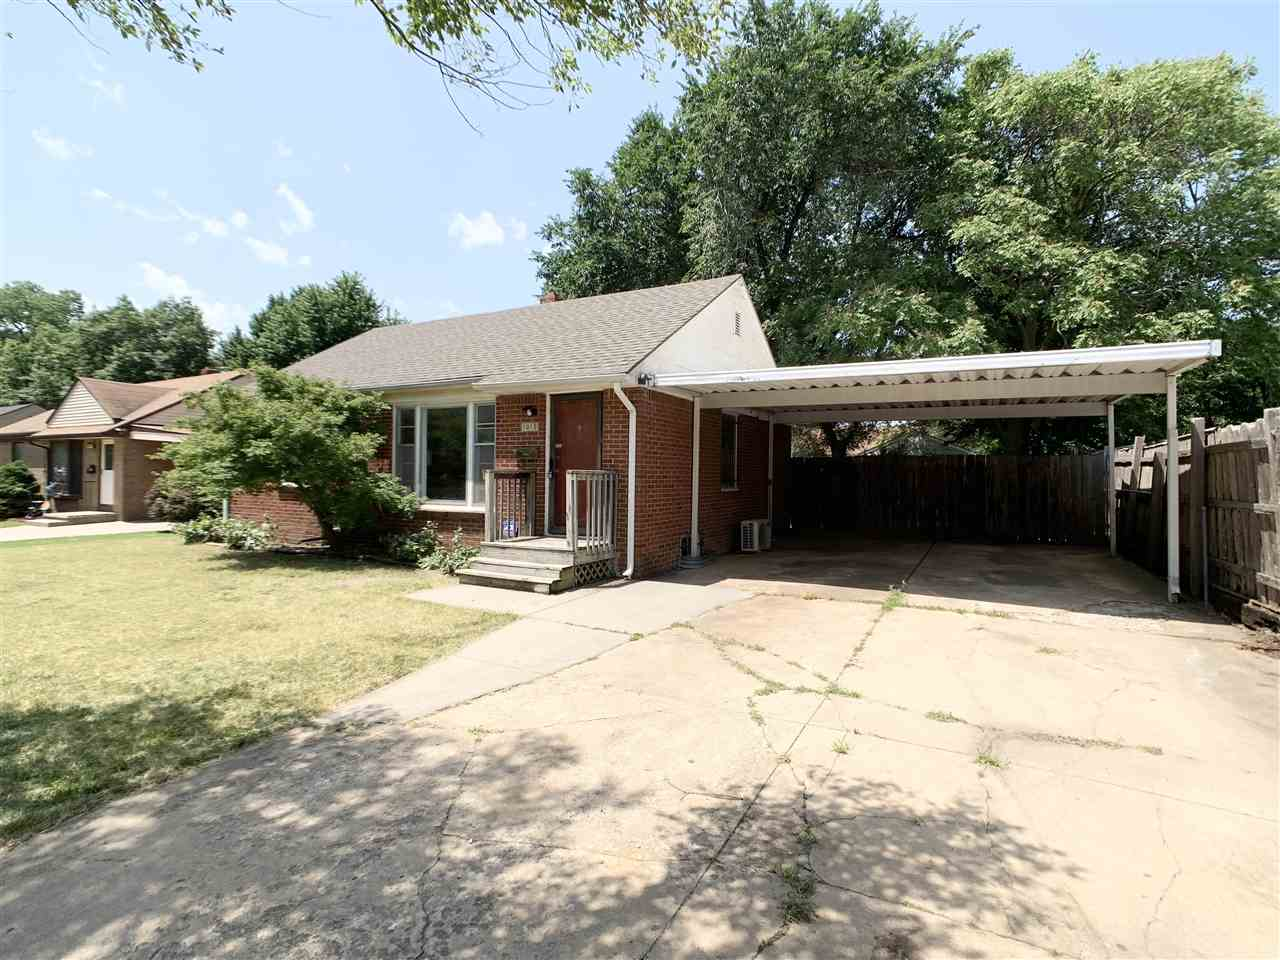 This all brick ranch is located in a quiet, southeast Wichita neighborhood. The exterior features a